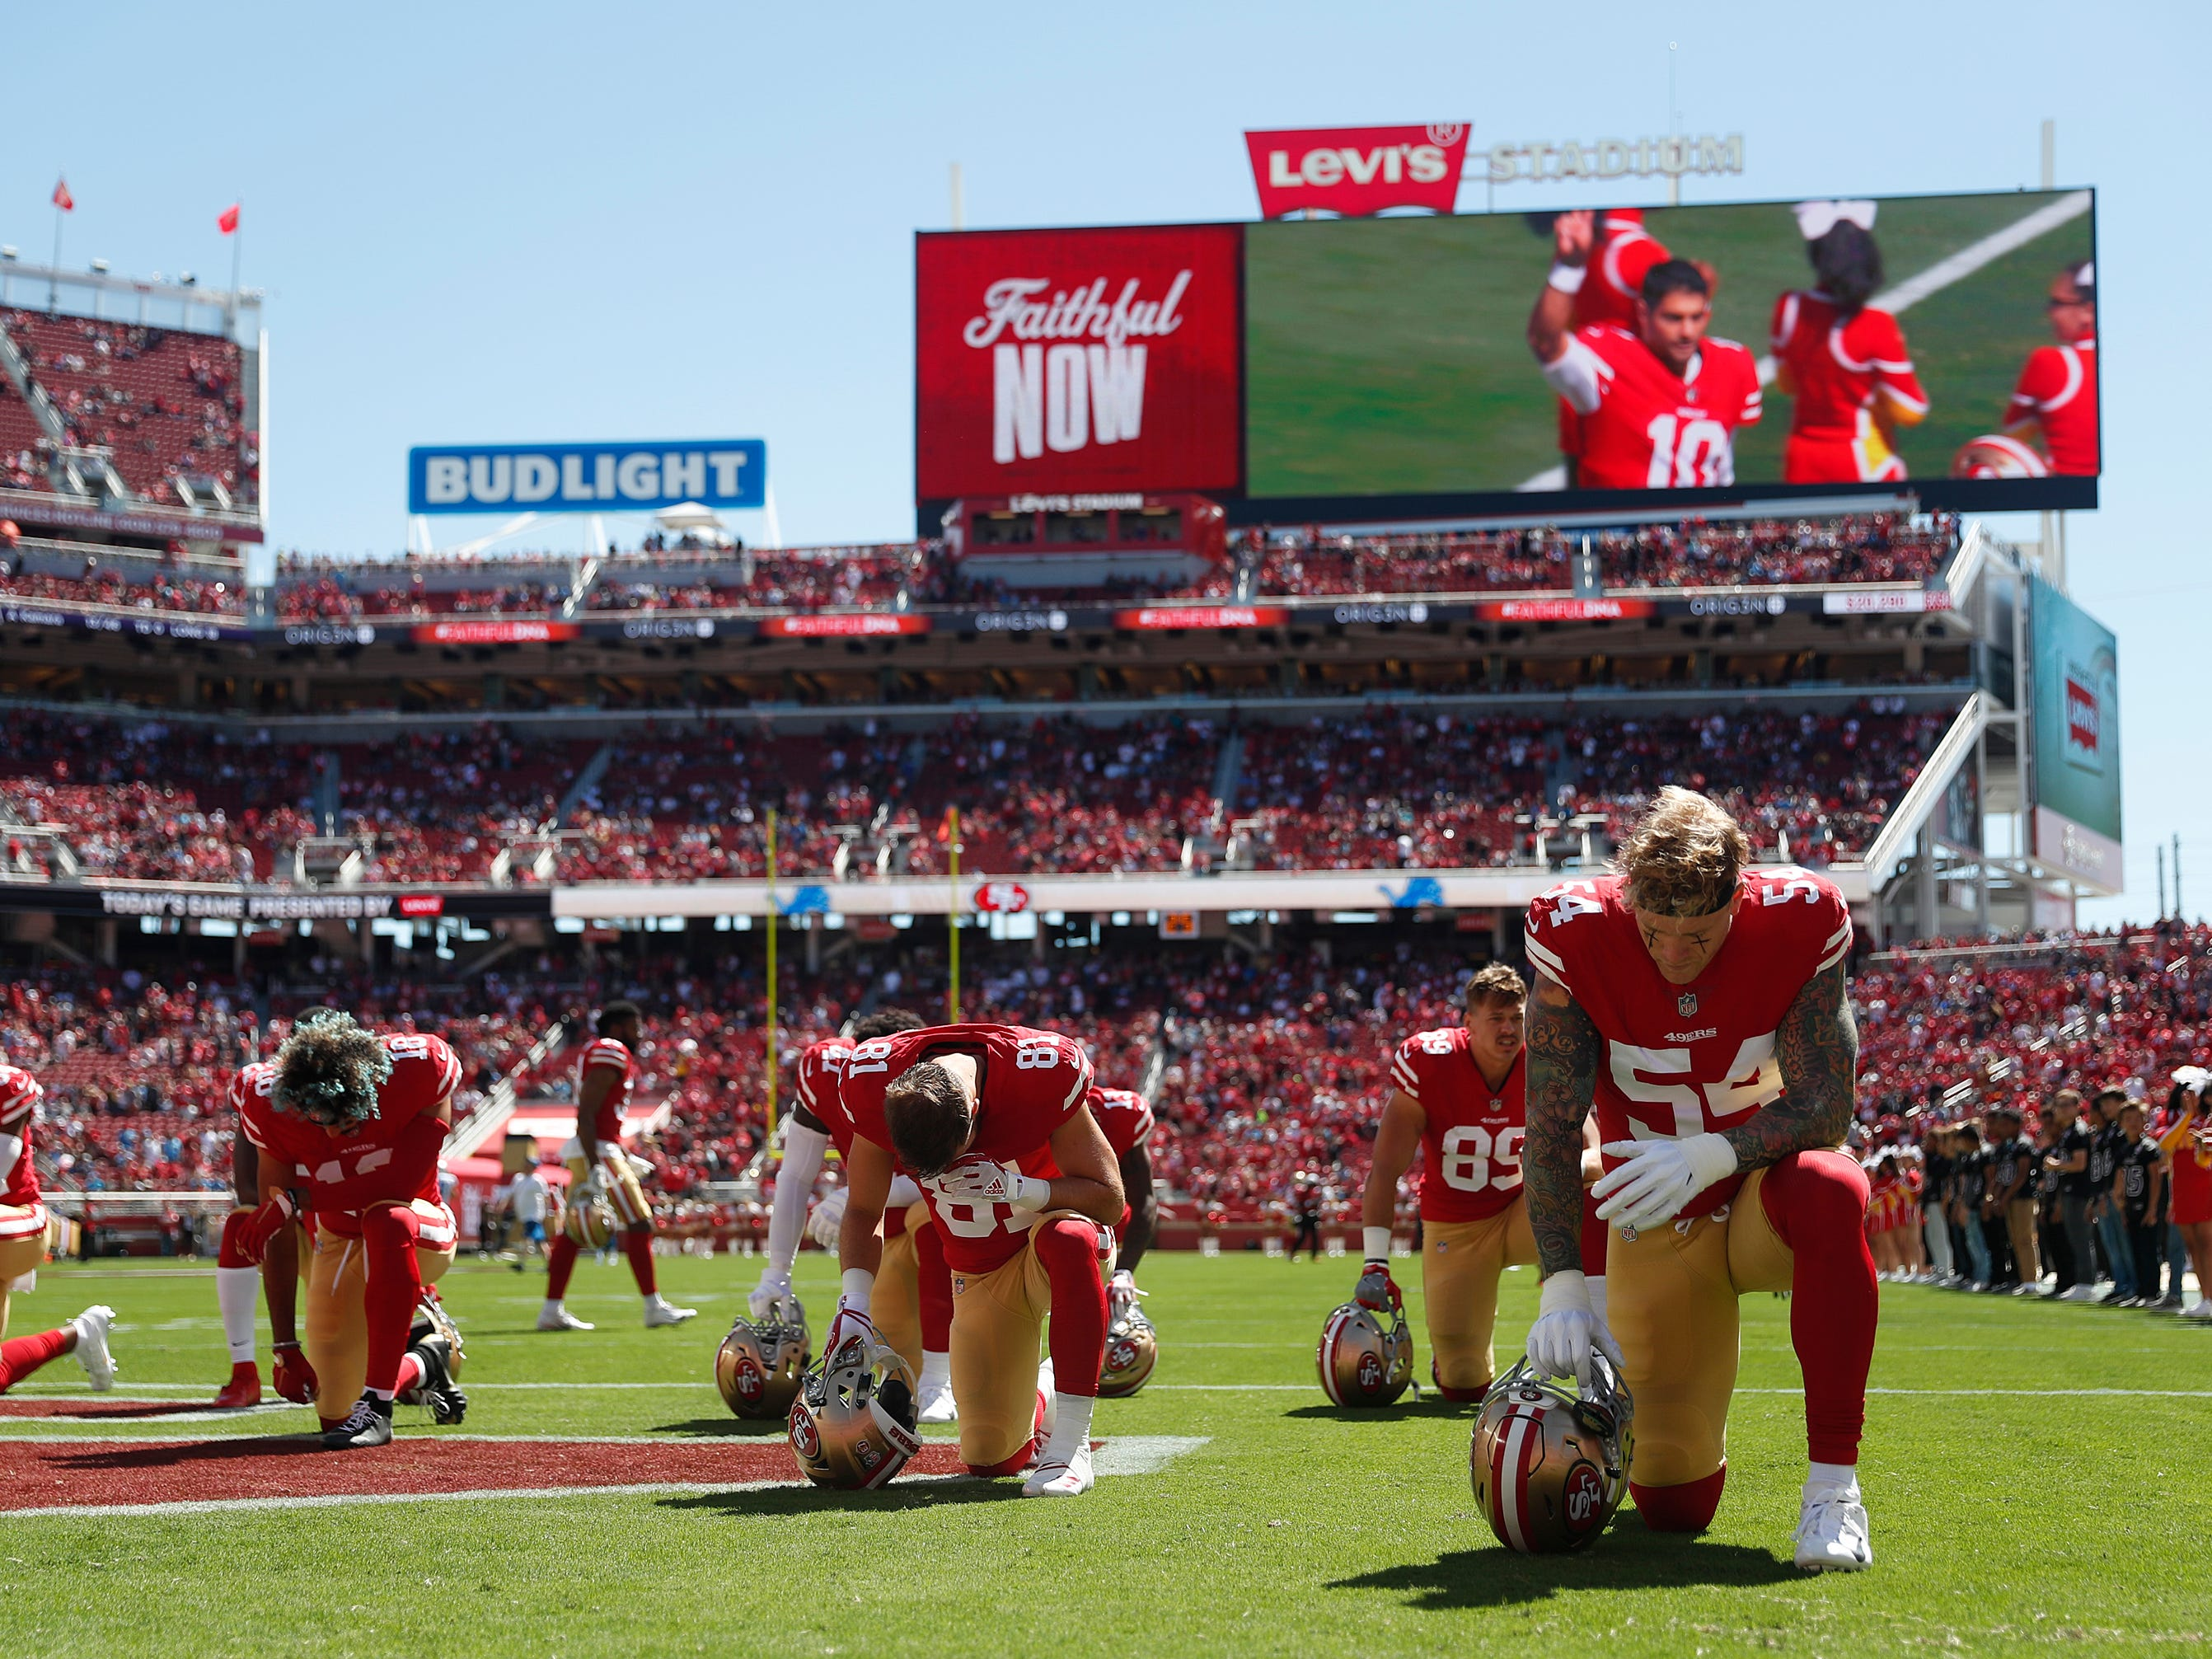 San Francisco 49ers kneel before the start of an NFL football game.